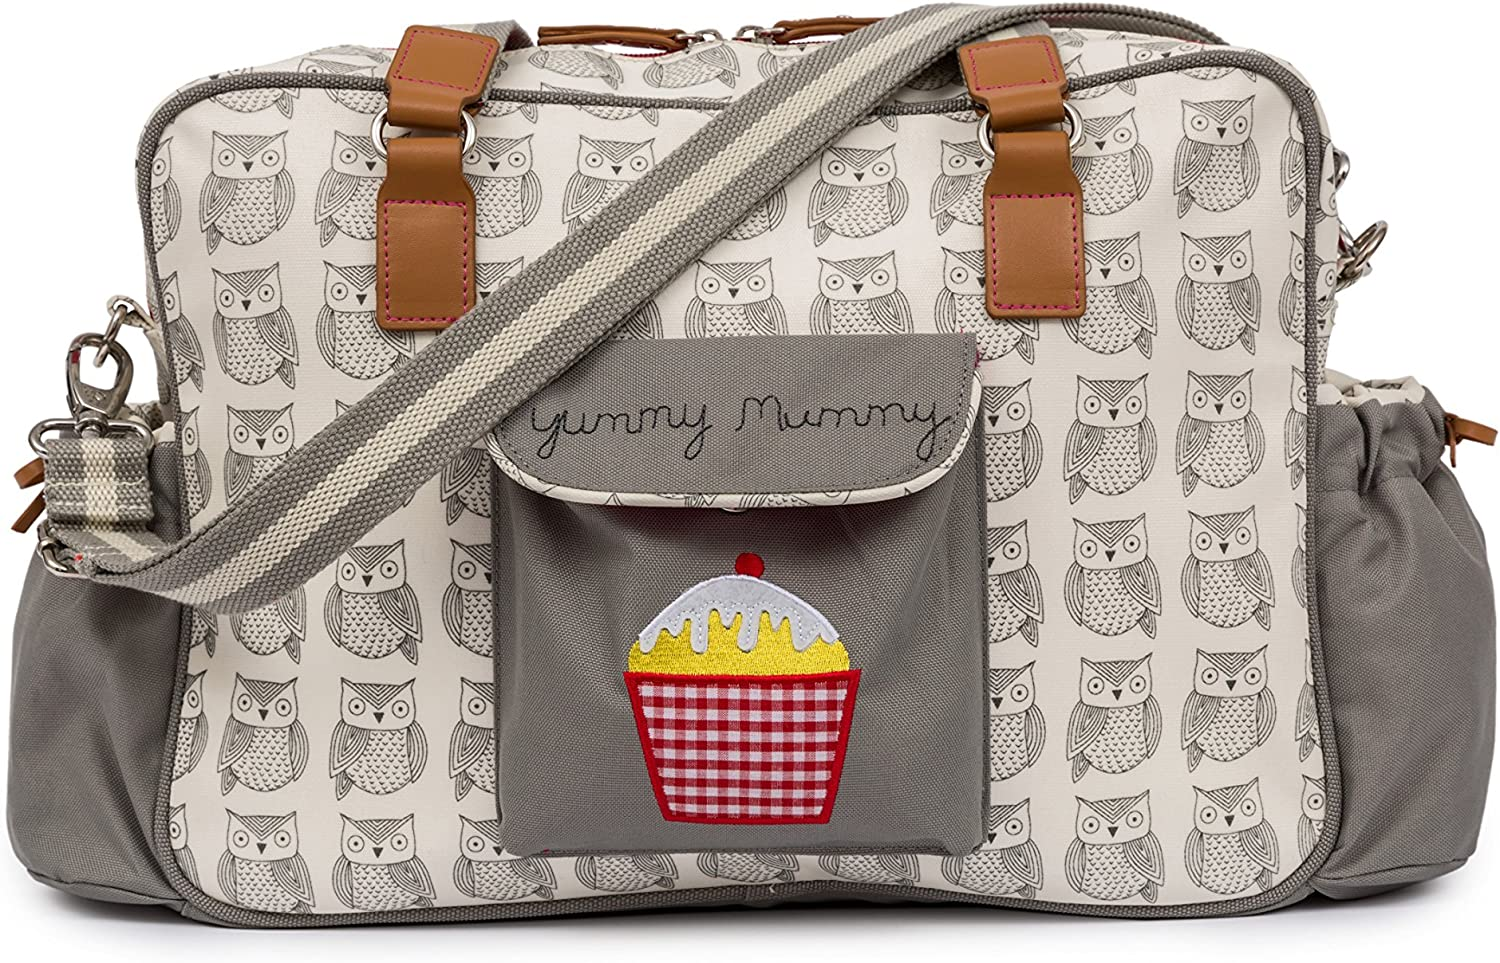 Brand New Pink Lining Yummy Mummy Baby Changing Nappy Bag Navy Bows